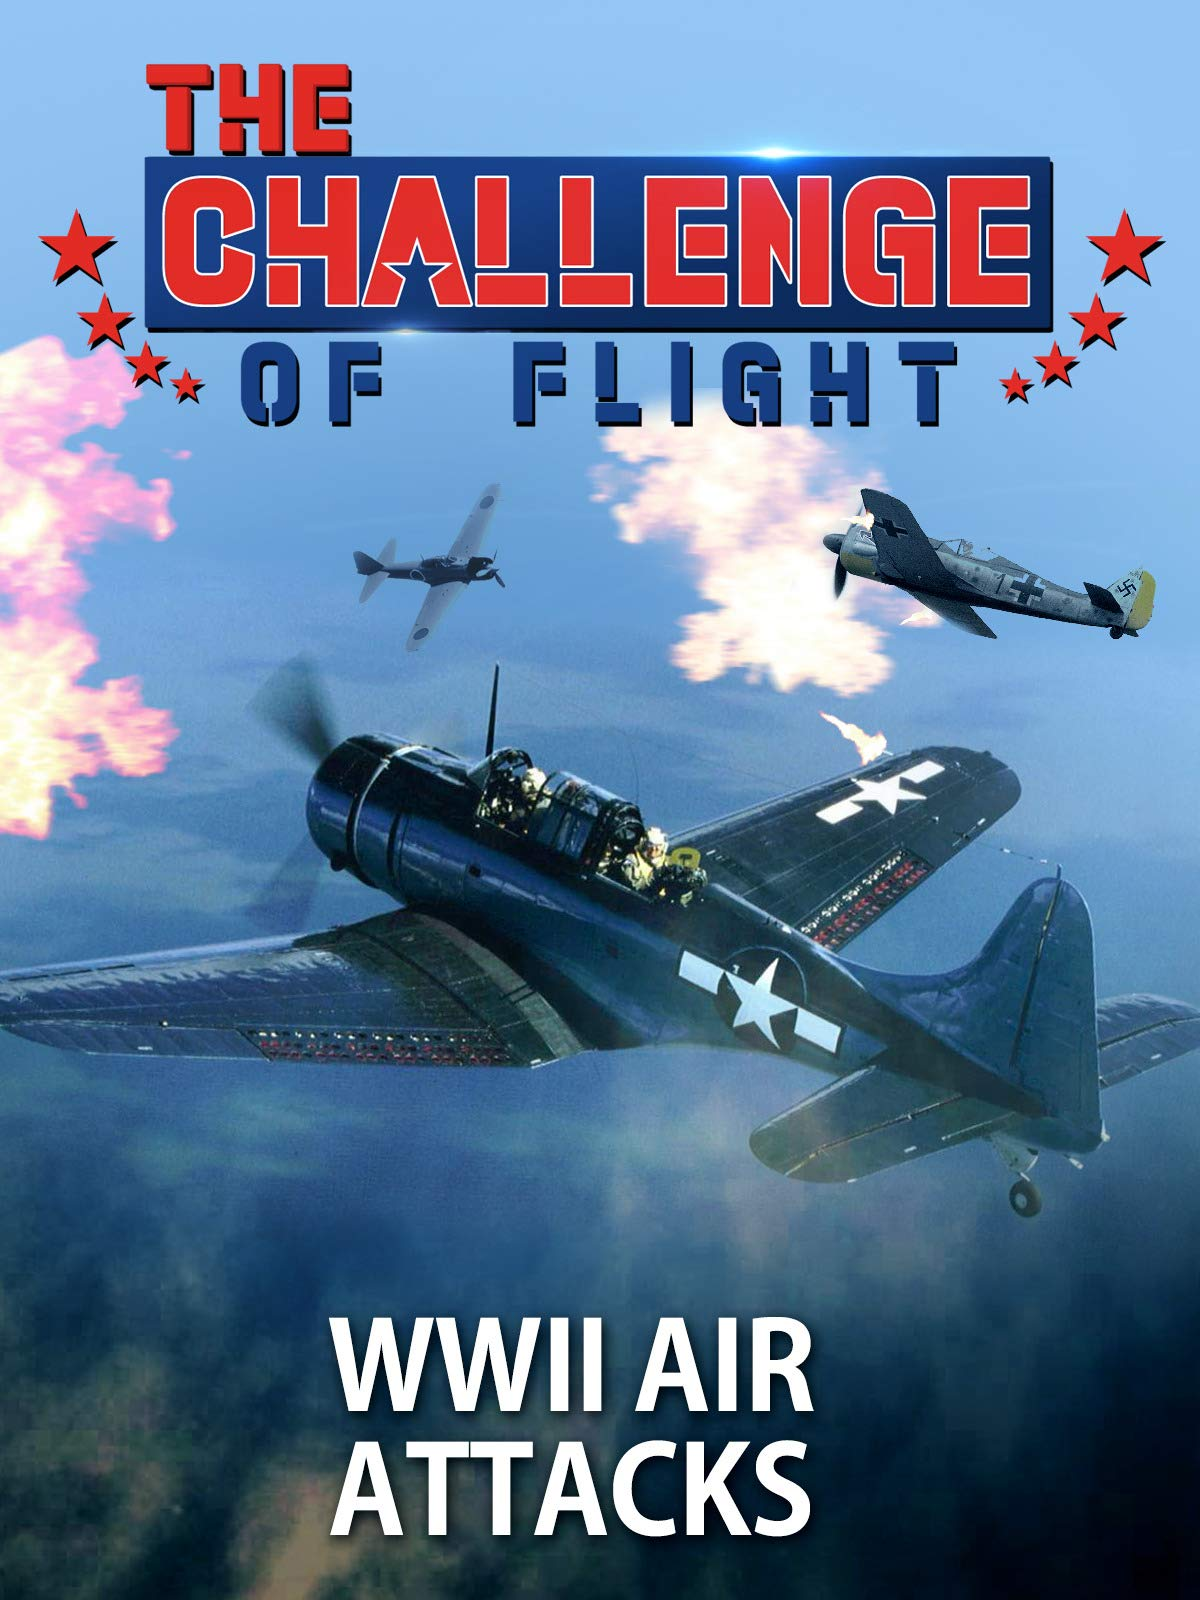 Clip: The Challenge of Flight - WWII Air Attacks